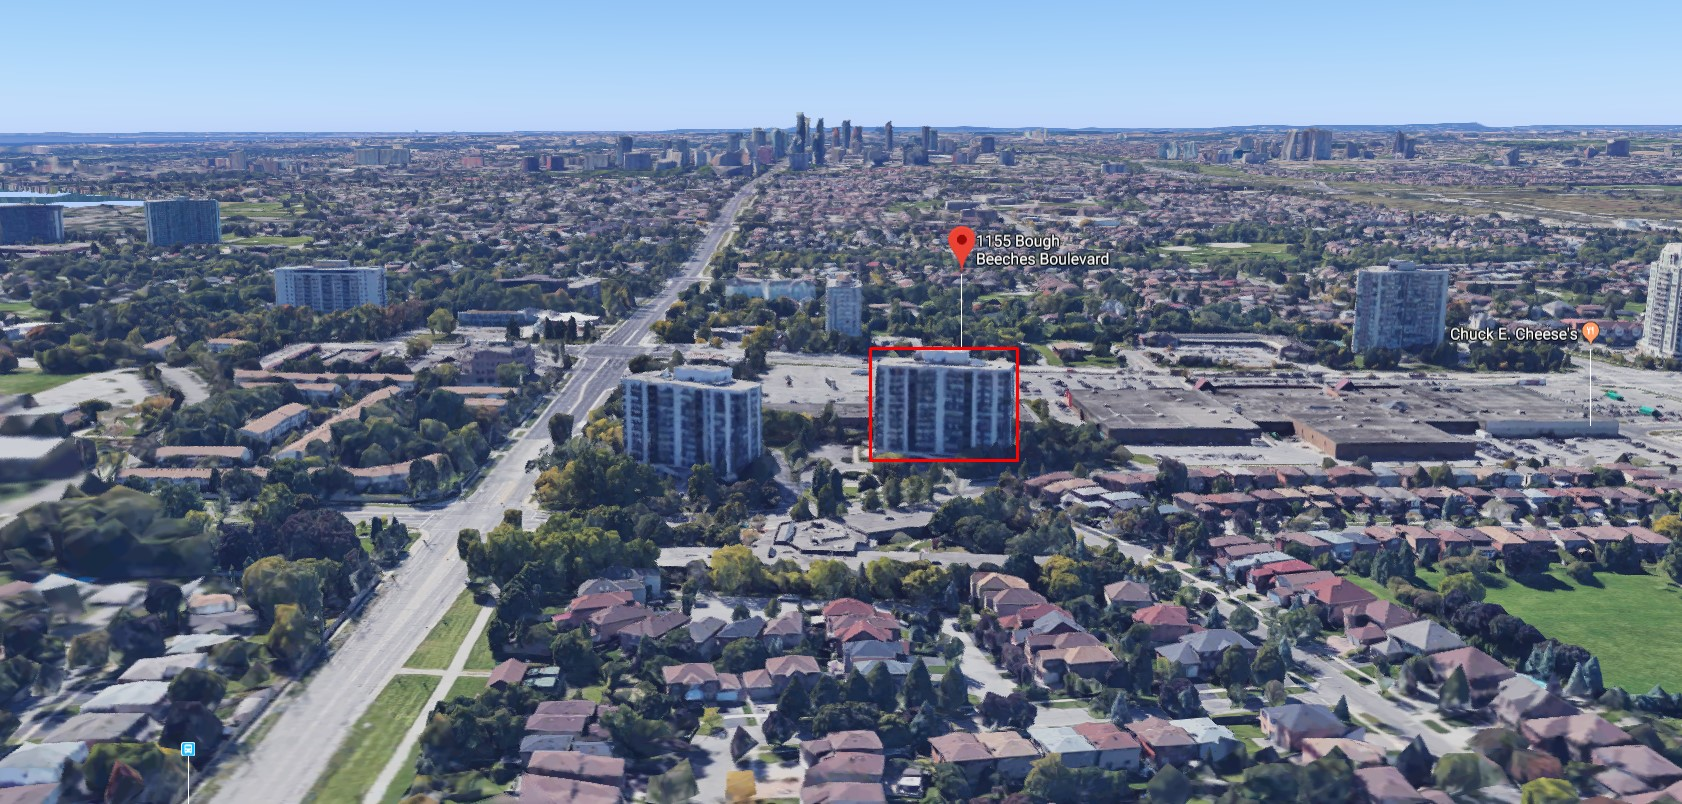 Orchard Place 2 Condos - 1155 Bough Beeches Blvd, Mississauga, ON L4W 4N2